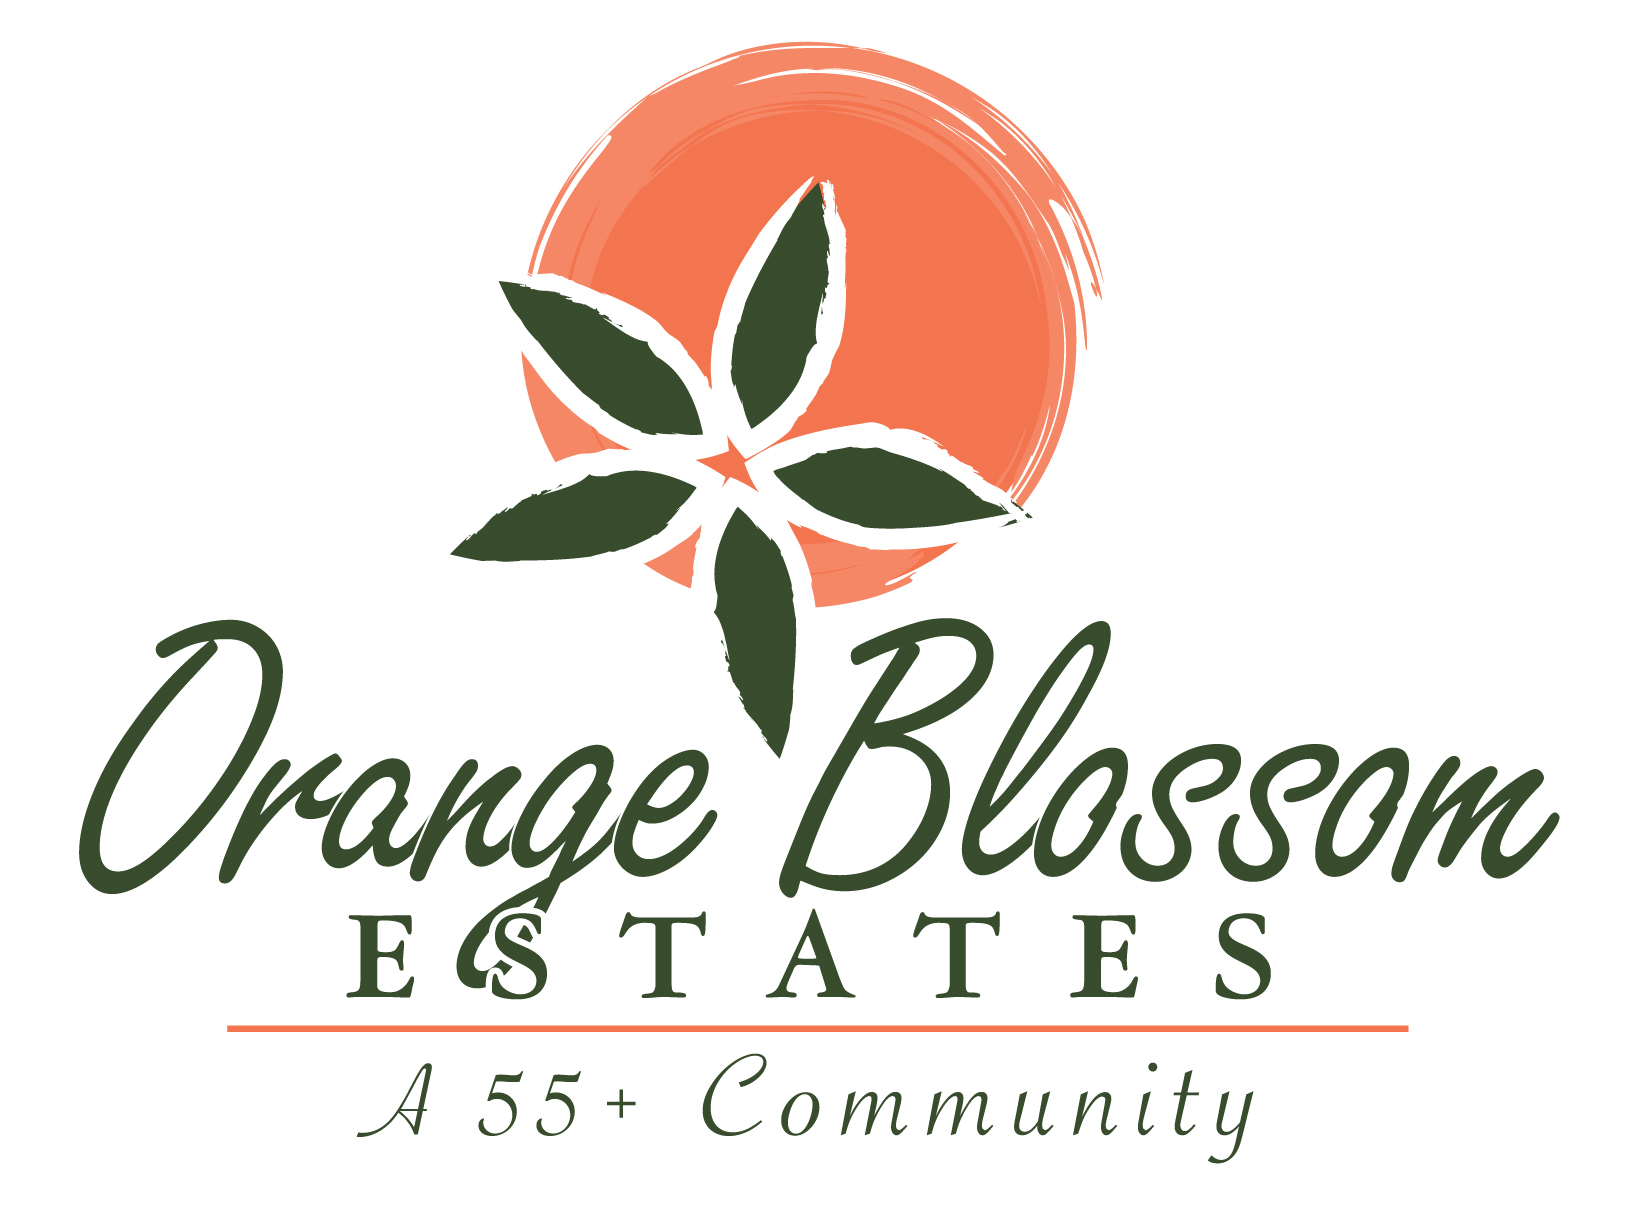 - Orange Blossom Estates is a brand new development of independent living units in Warrenton, MO. The first phase of units is expected to be completed later in 2019. Now taking applications for the waiting list.